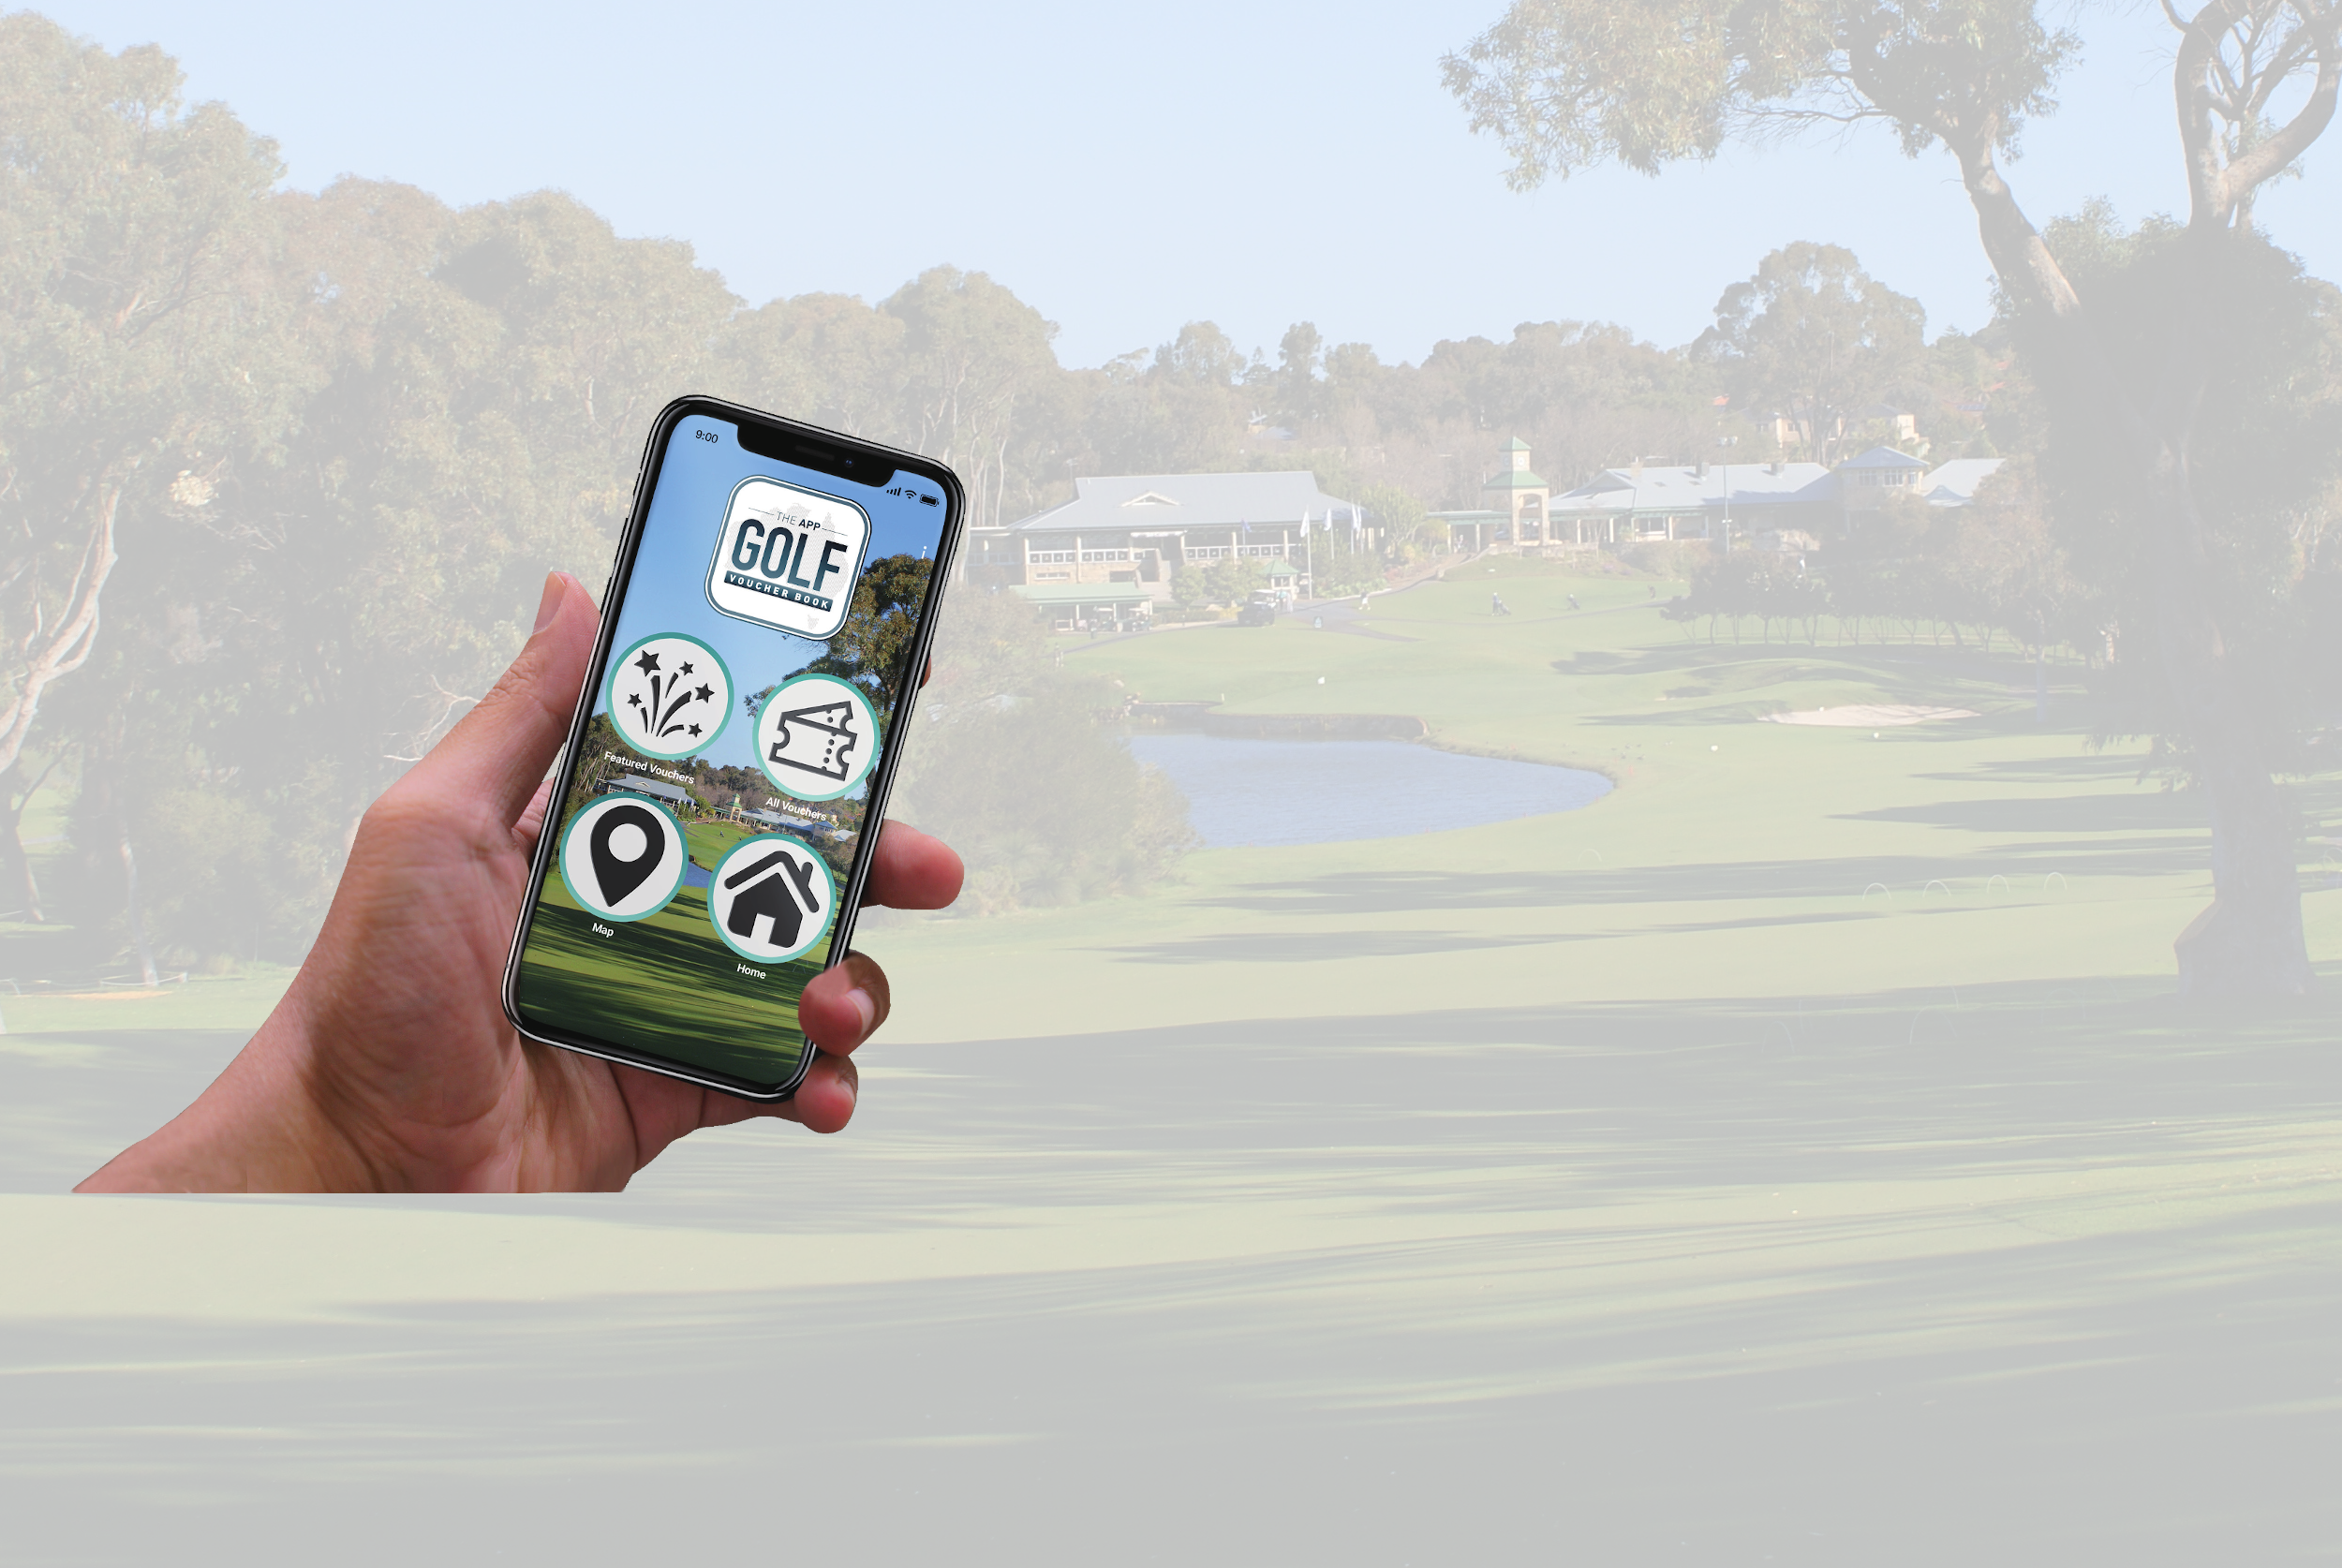 WELCOME TO THE NEW<br/>GOLF VOUCHER BOOK APP